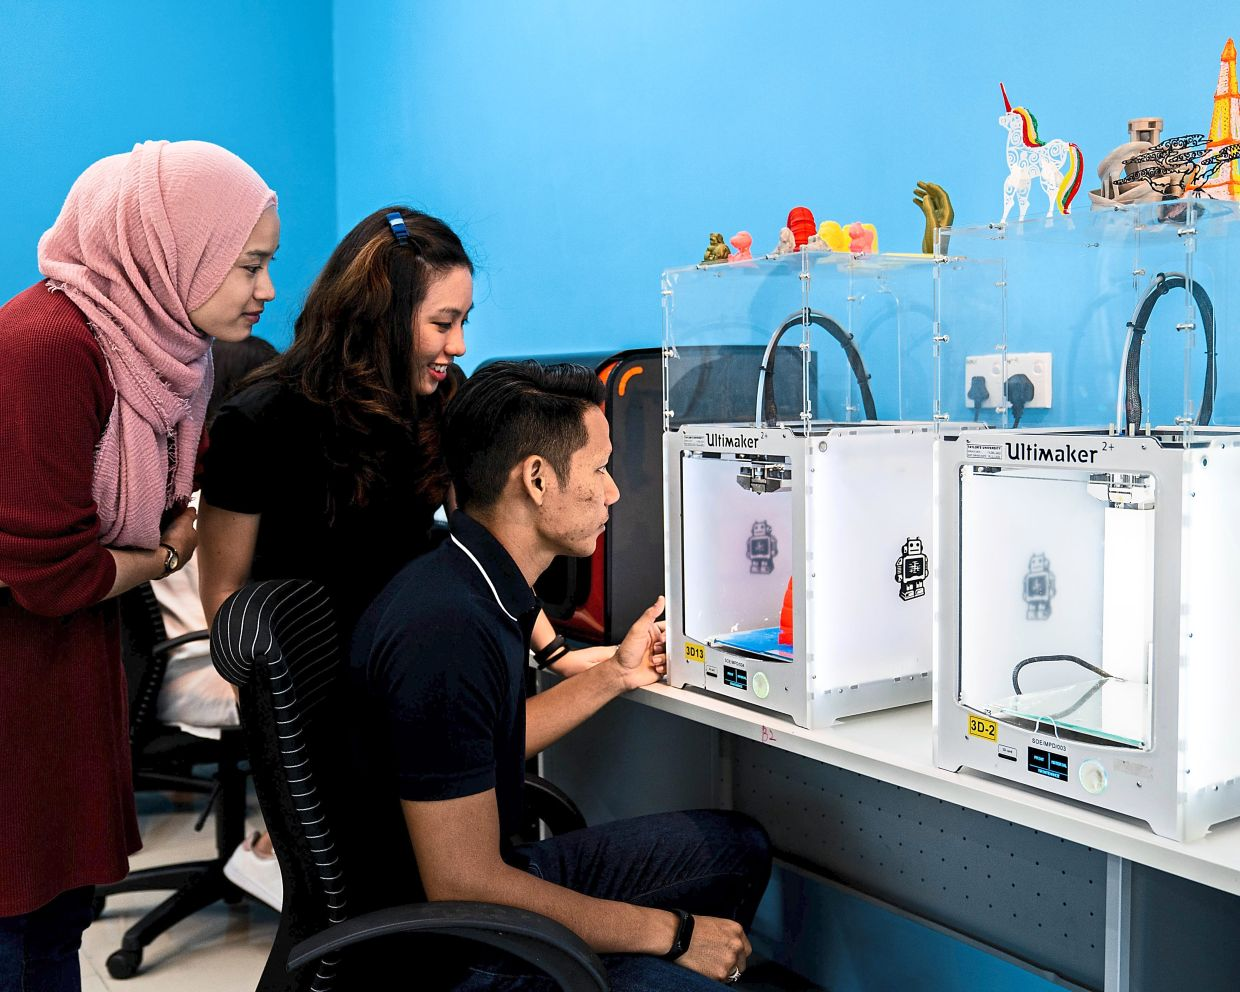 Taylor's University's Me.reka Makerspace is equipped with relevant tools that allows students to explore their creative and entrepreneurial ideas.